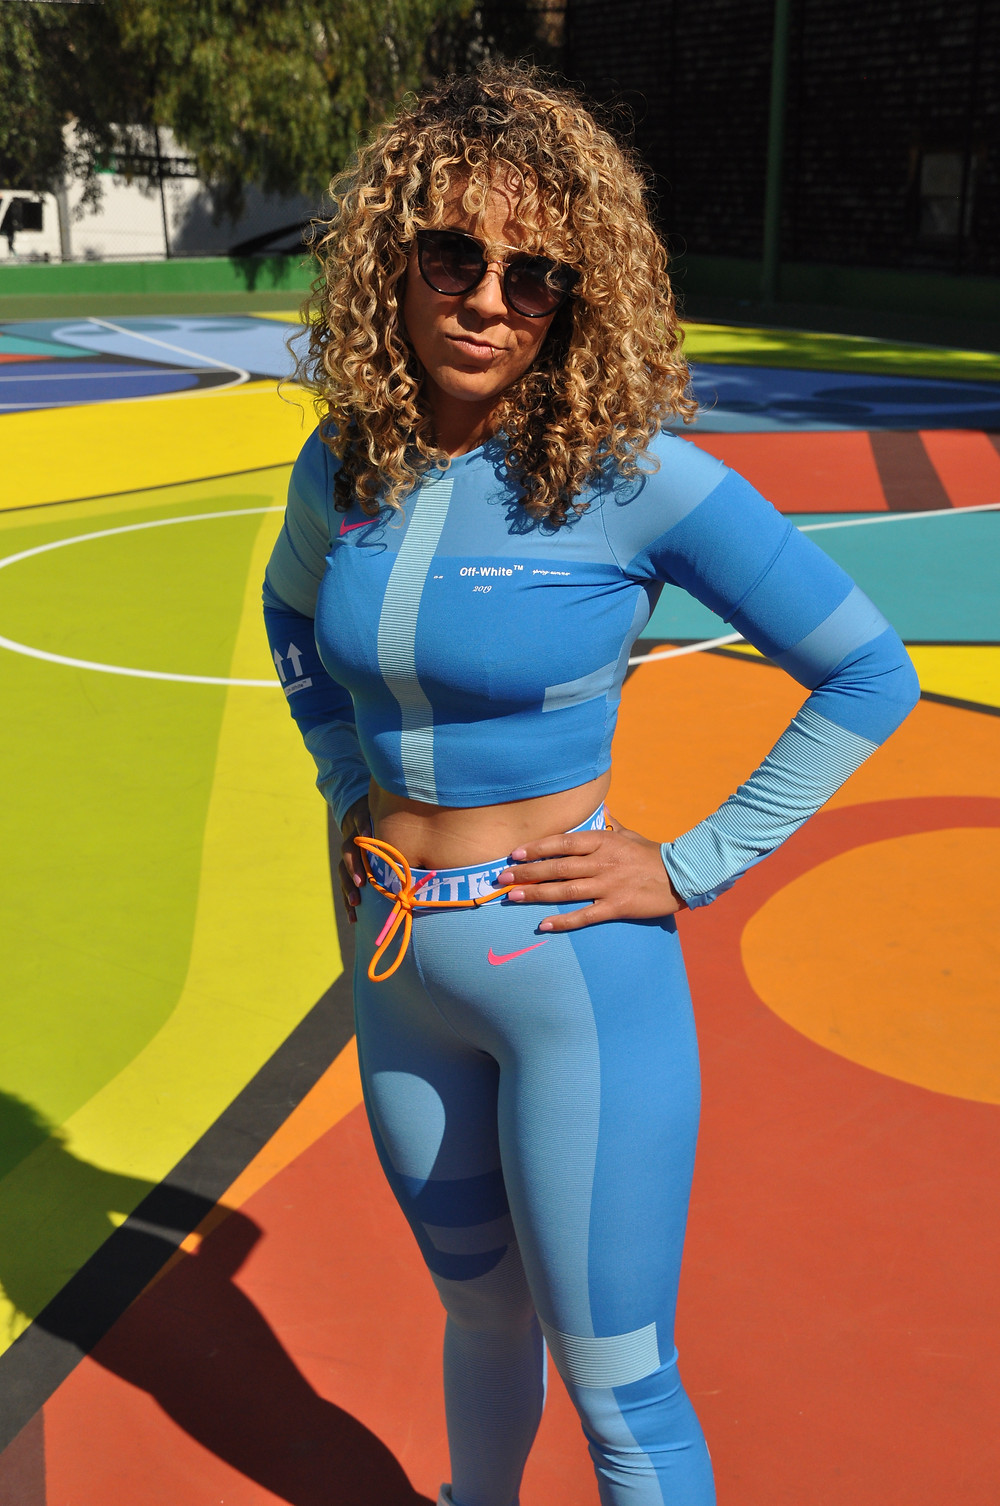 Girl in sunglasses and off white outfit posed on a colorful basketball court